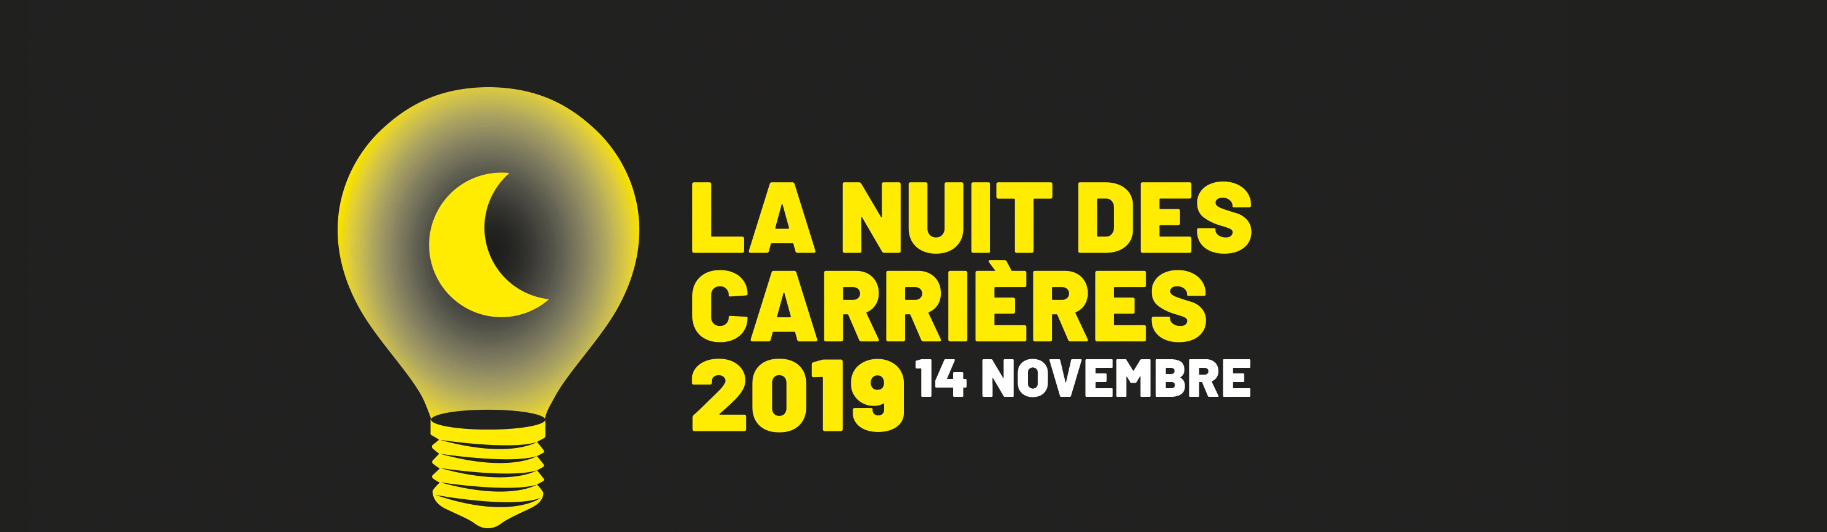 nuit des carrieres_2 2019.PNG